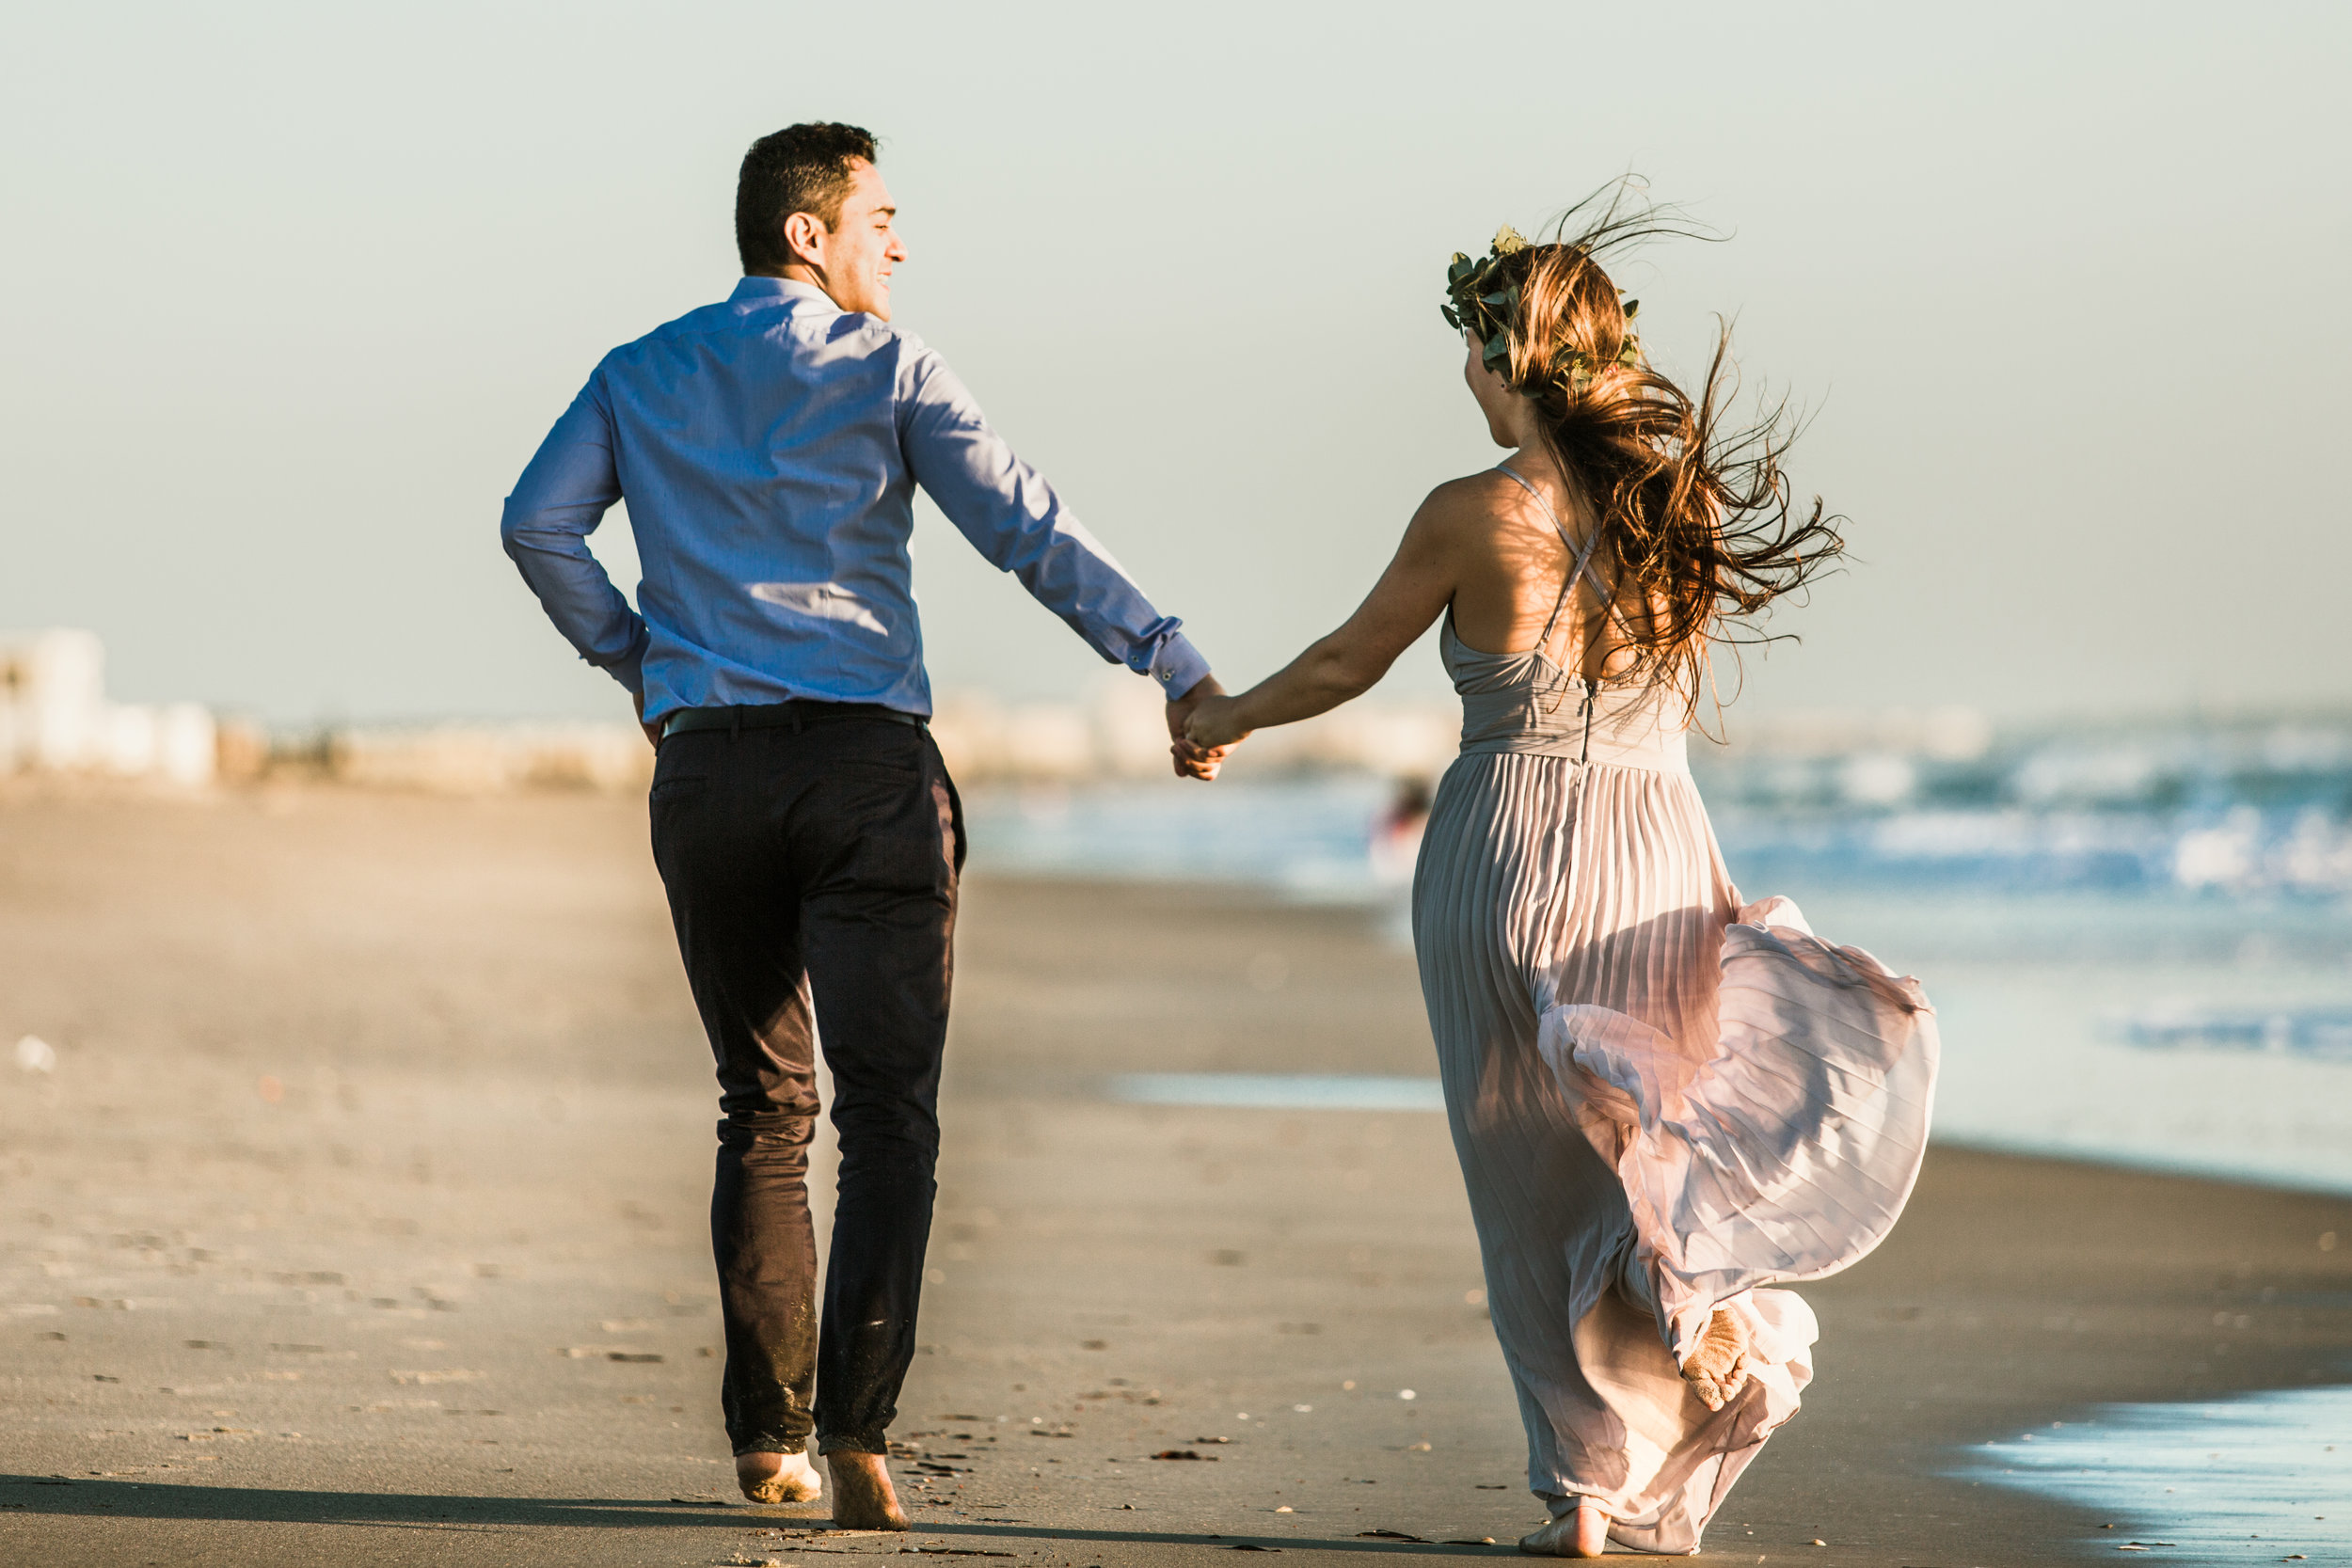 Elya + Andres - Cocoa Beach Engagement - boho bride organic eucalpytus crown mermaid forest5.jpg